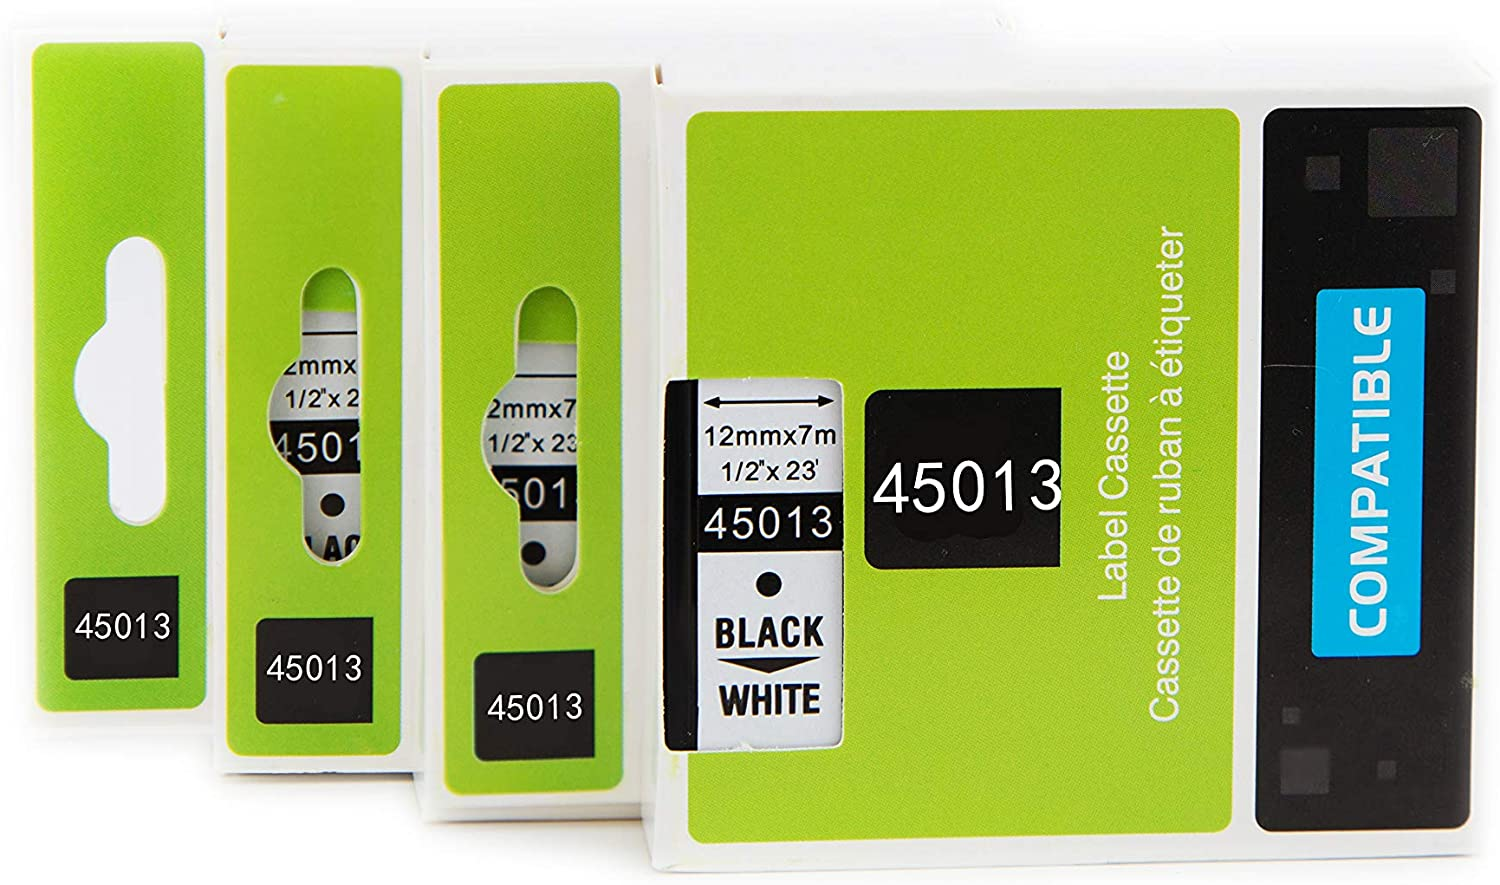 3 Pack Compatible with Dymo D1 45013 Label Tape S0720530 Cassette 12mm 7m Standard Self-Adhesive-Black on White Suitable for LabelManager 160 210D 260P 280 PnP Labelwriter Printers